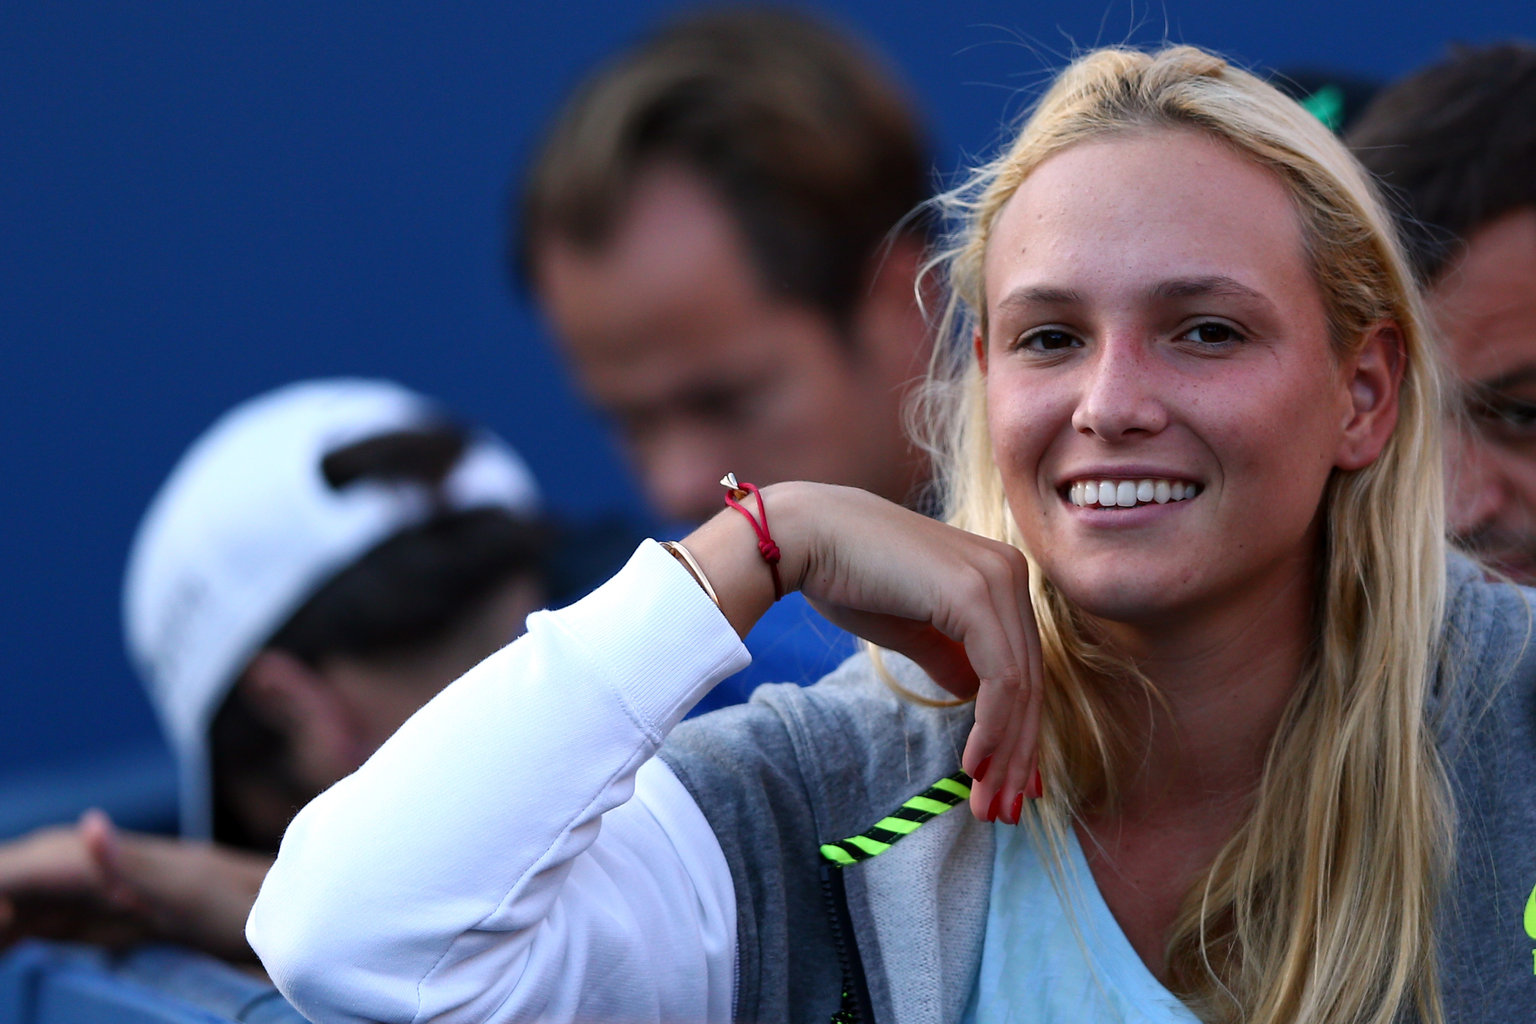 Cute Donna Vekic Beautiful Smile In Stadium Hd Mobile Free Download Background Photos